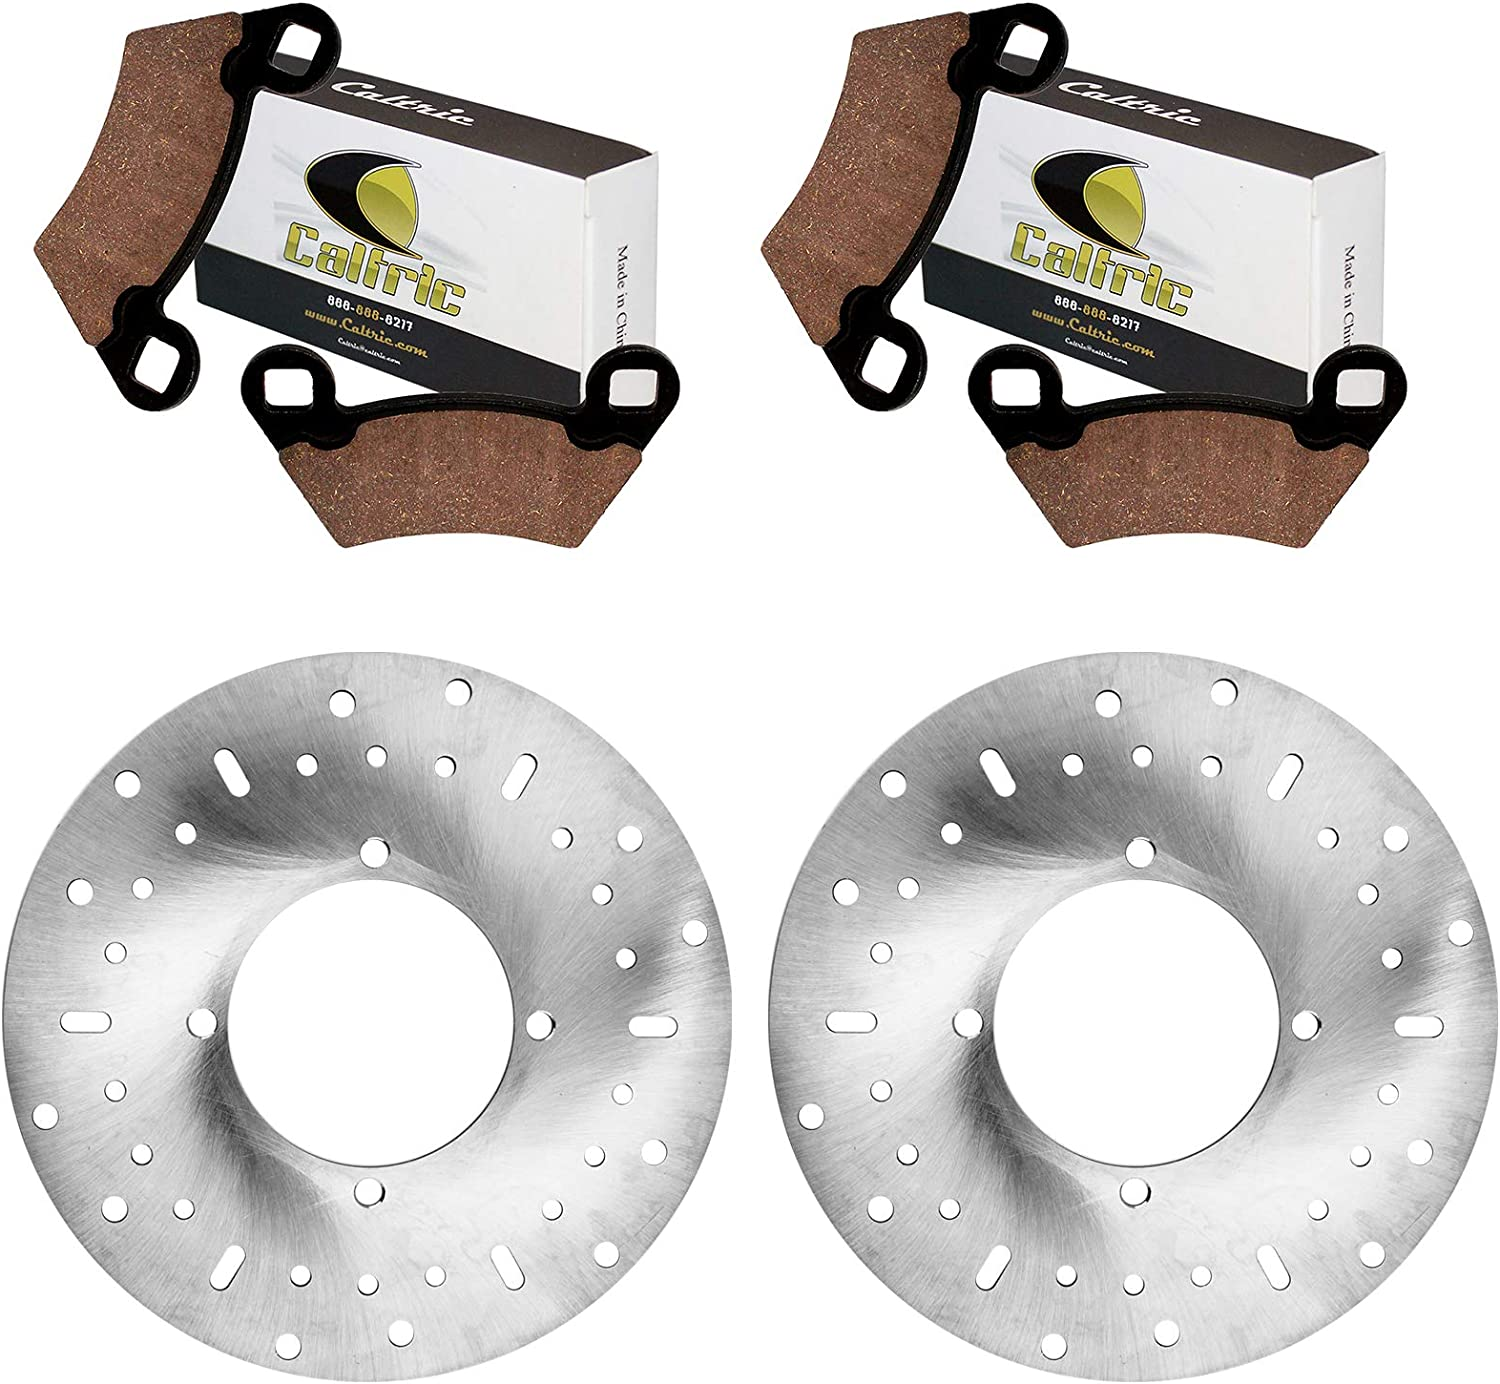 Caltric 2 Front Brake Disc Rotor with Pads Polari Compatible And New item Cheap SALE Start